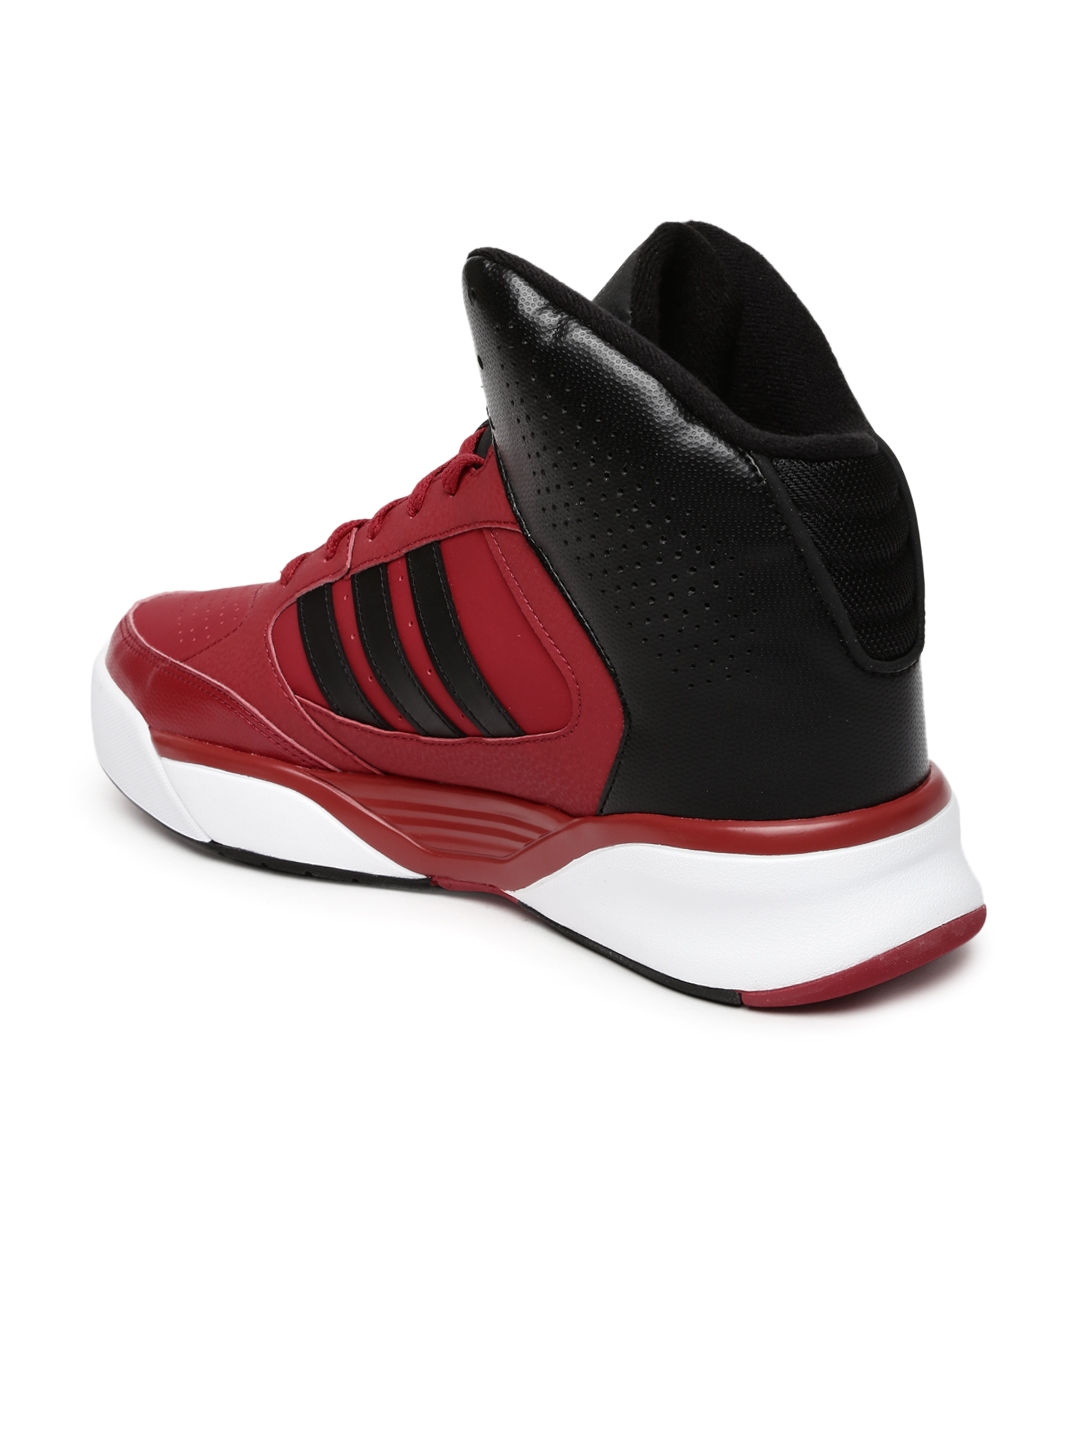 7c0d2b7853ef75 ... clearance adidas neo men red cloudfoam nightball sneakers bc311 6e427